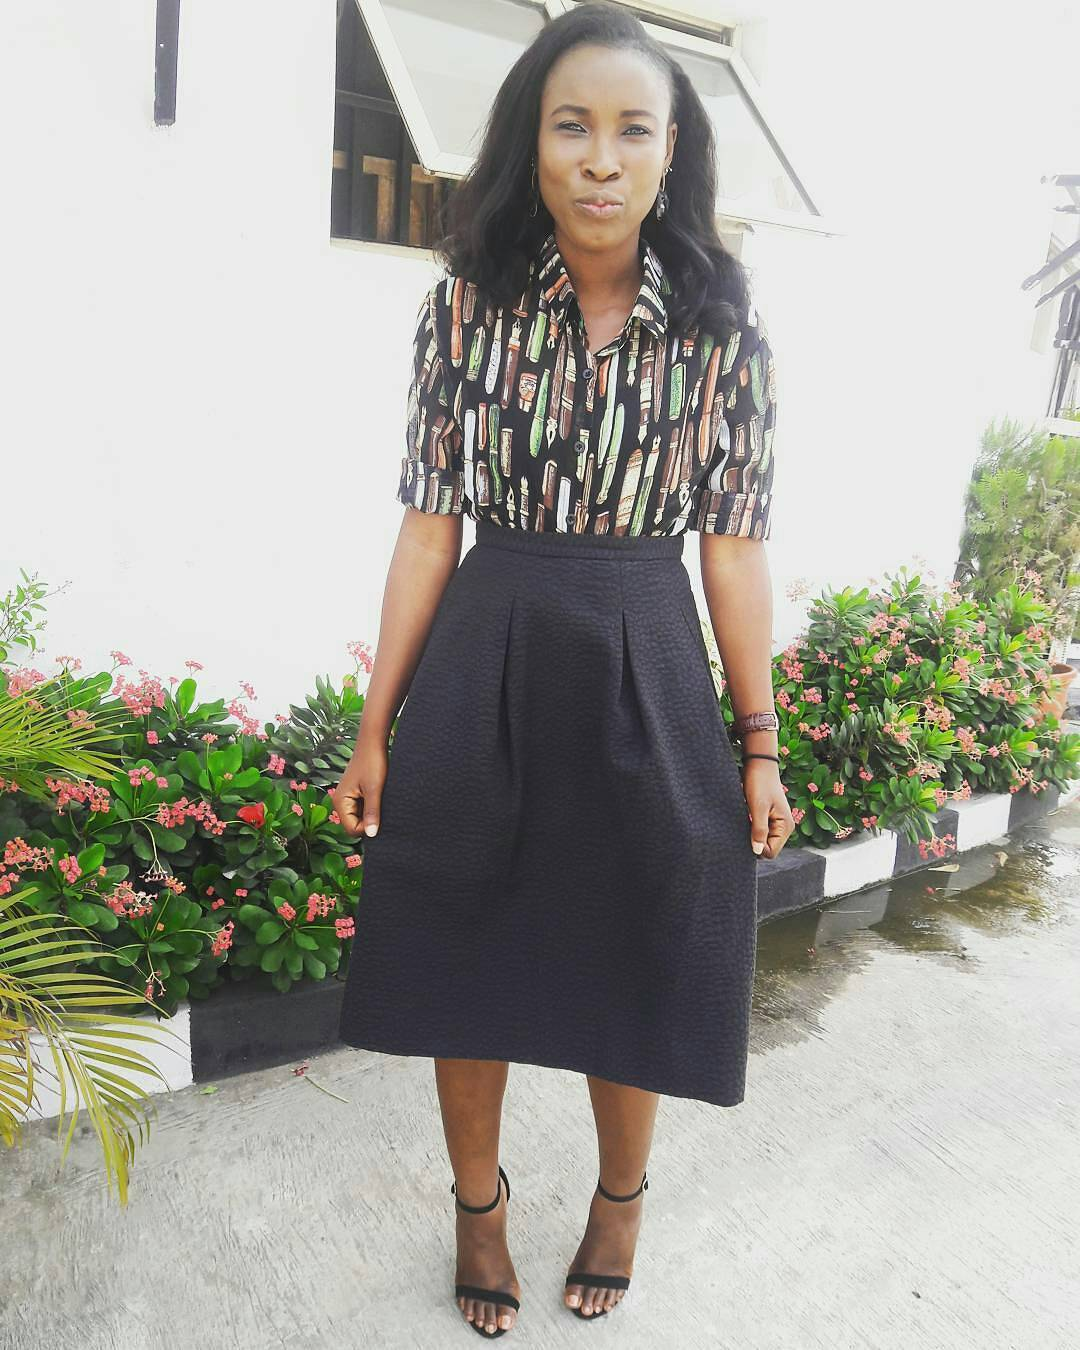 Skirt Outfits That Are Work Approved